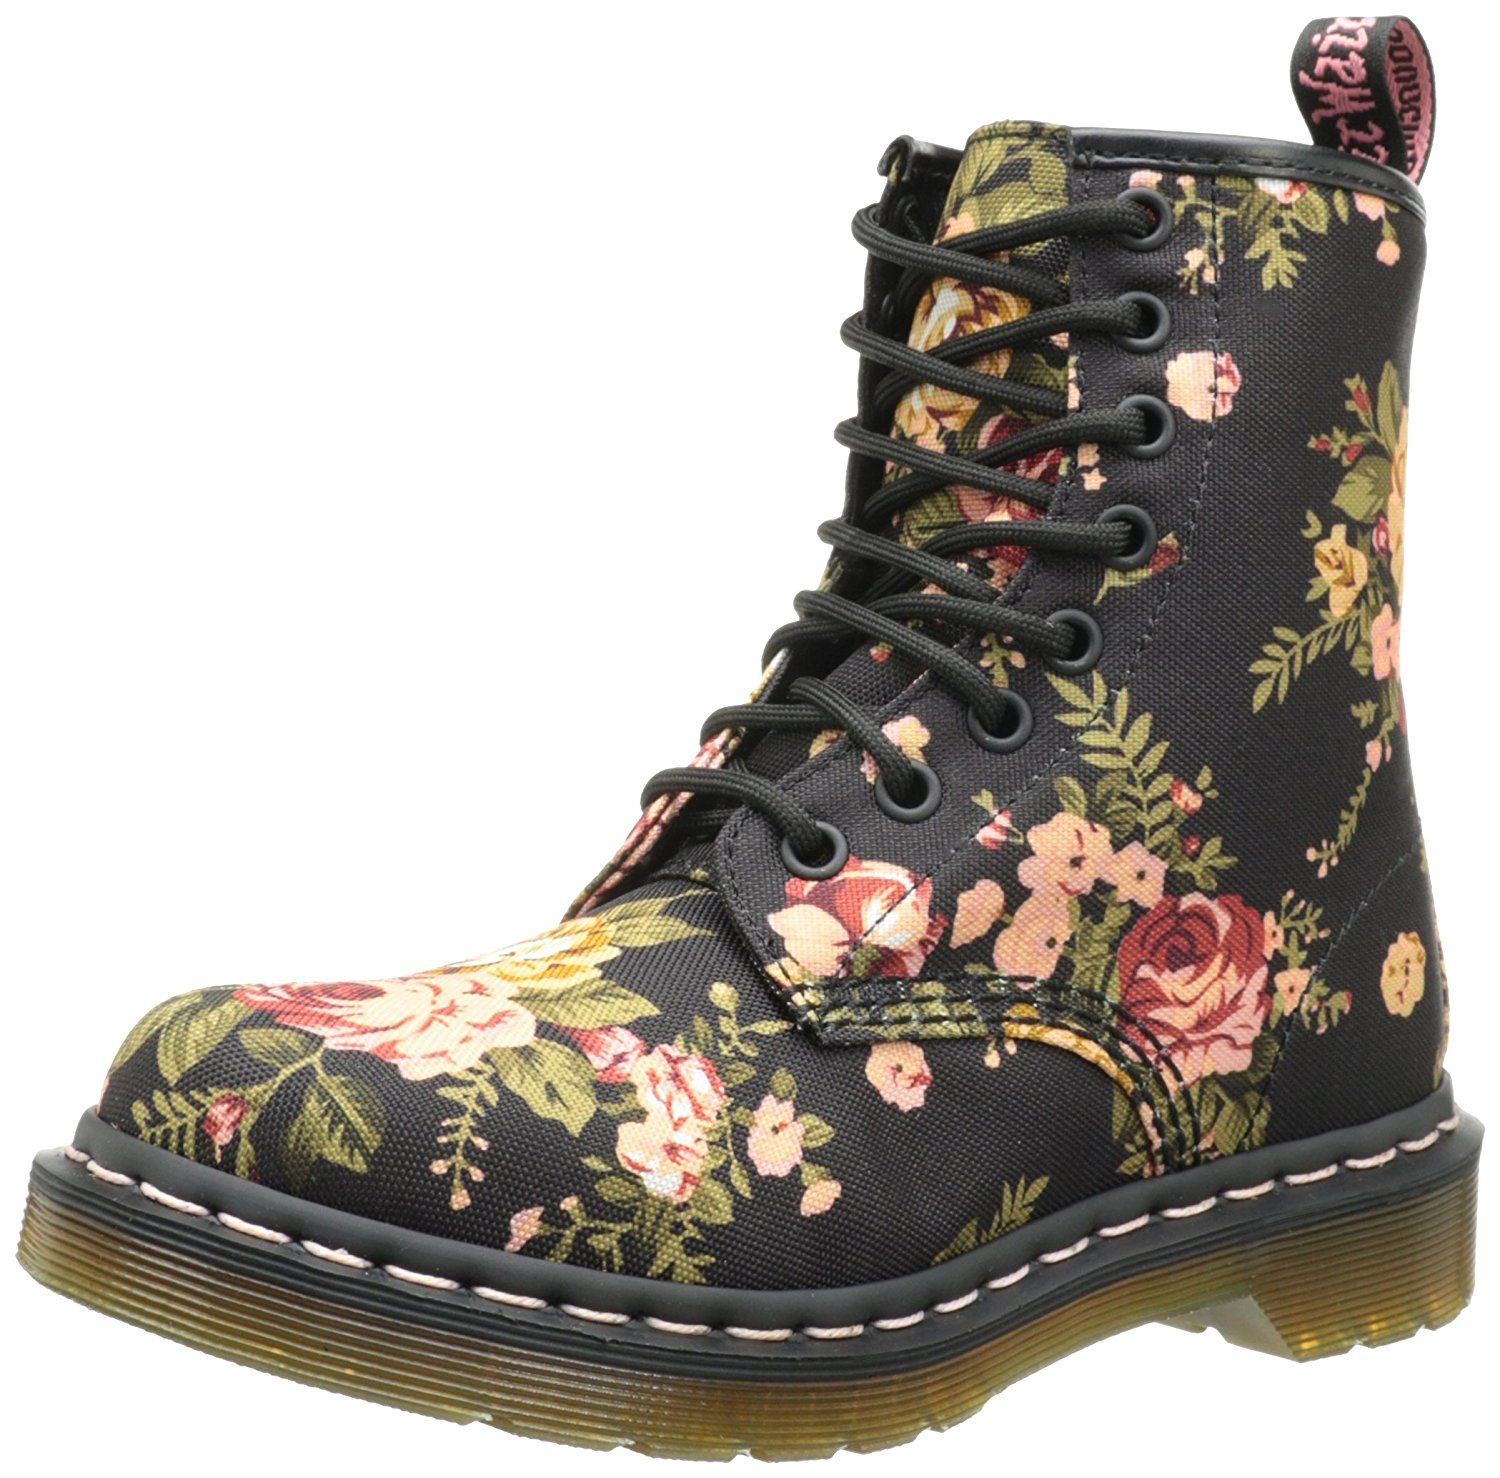 Women's 1460 Re-Invented Victorian Print Lace Up Boot